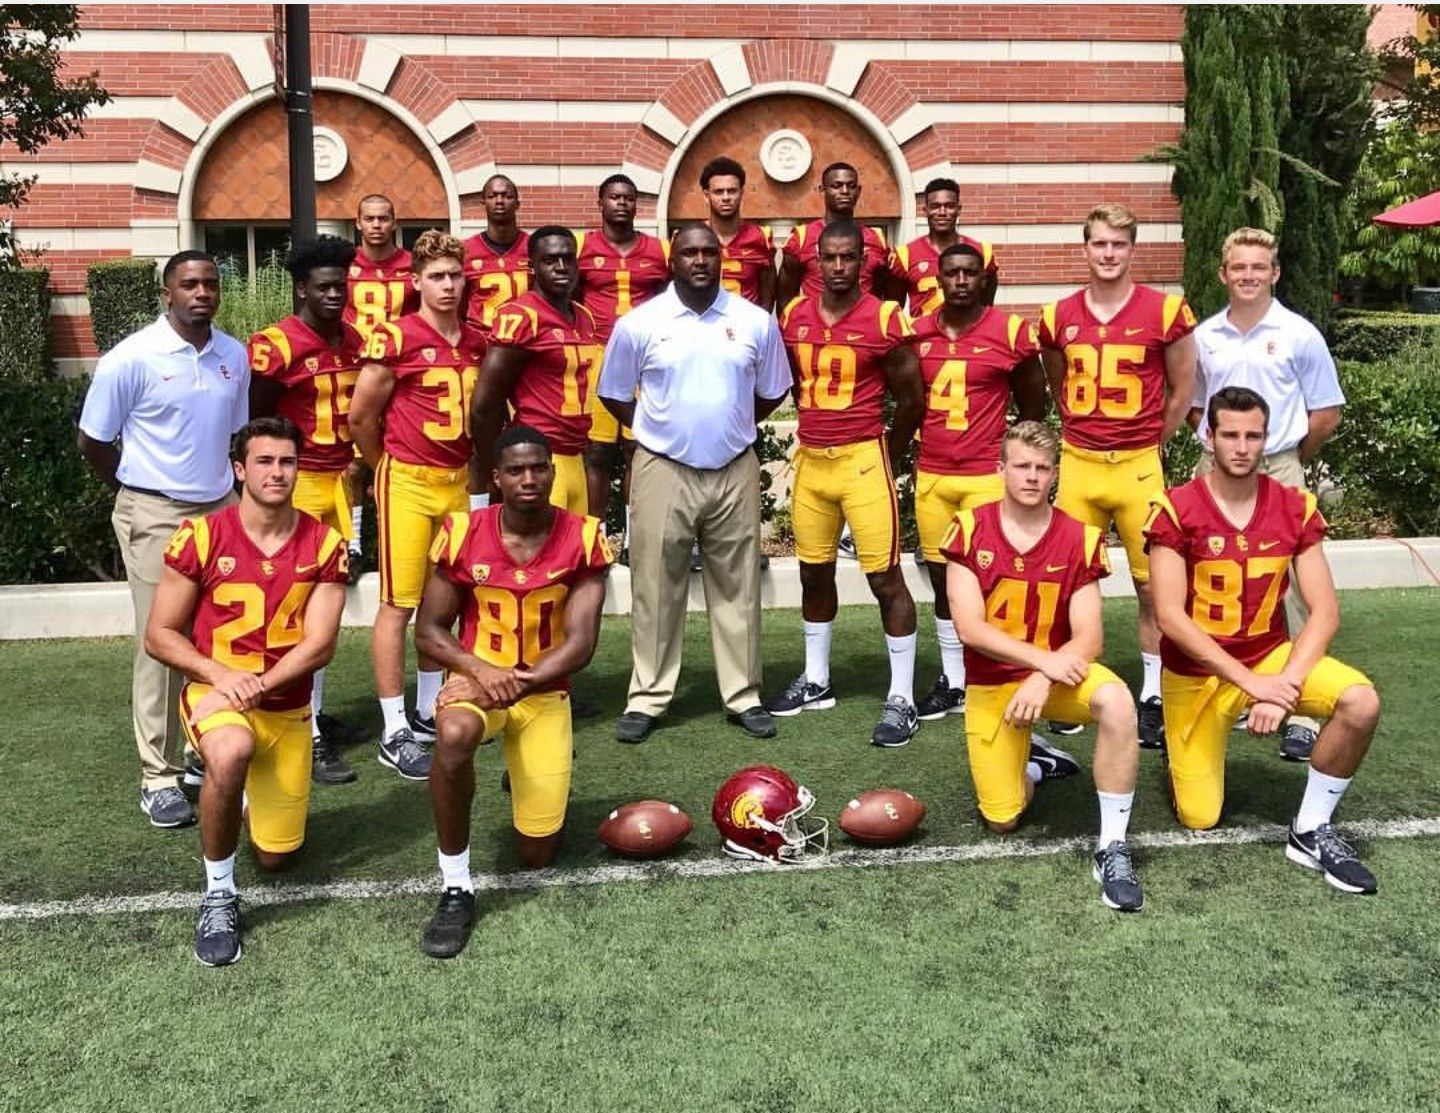 usc football jersey number 9